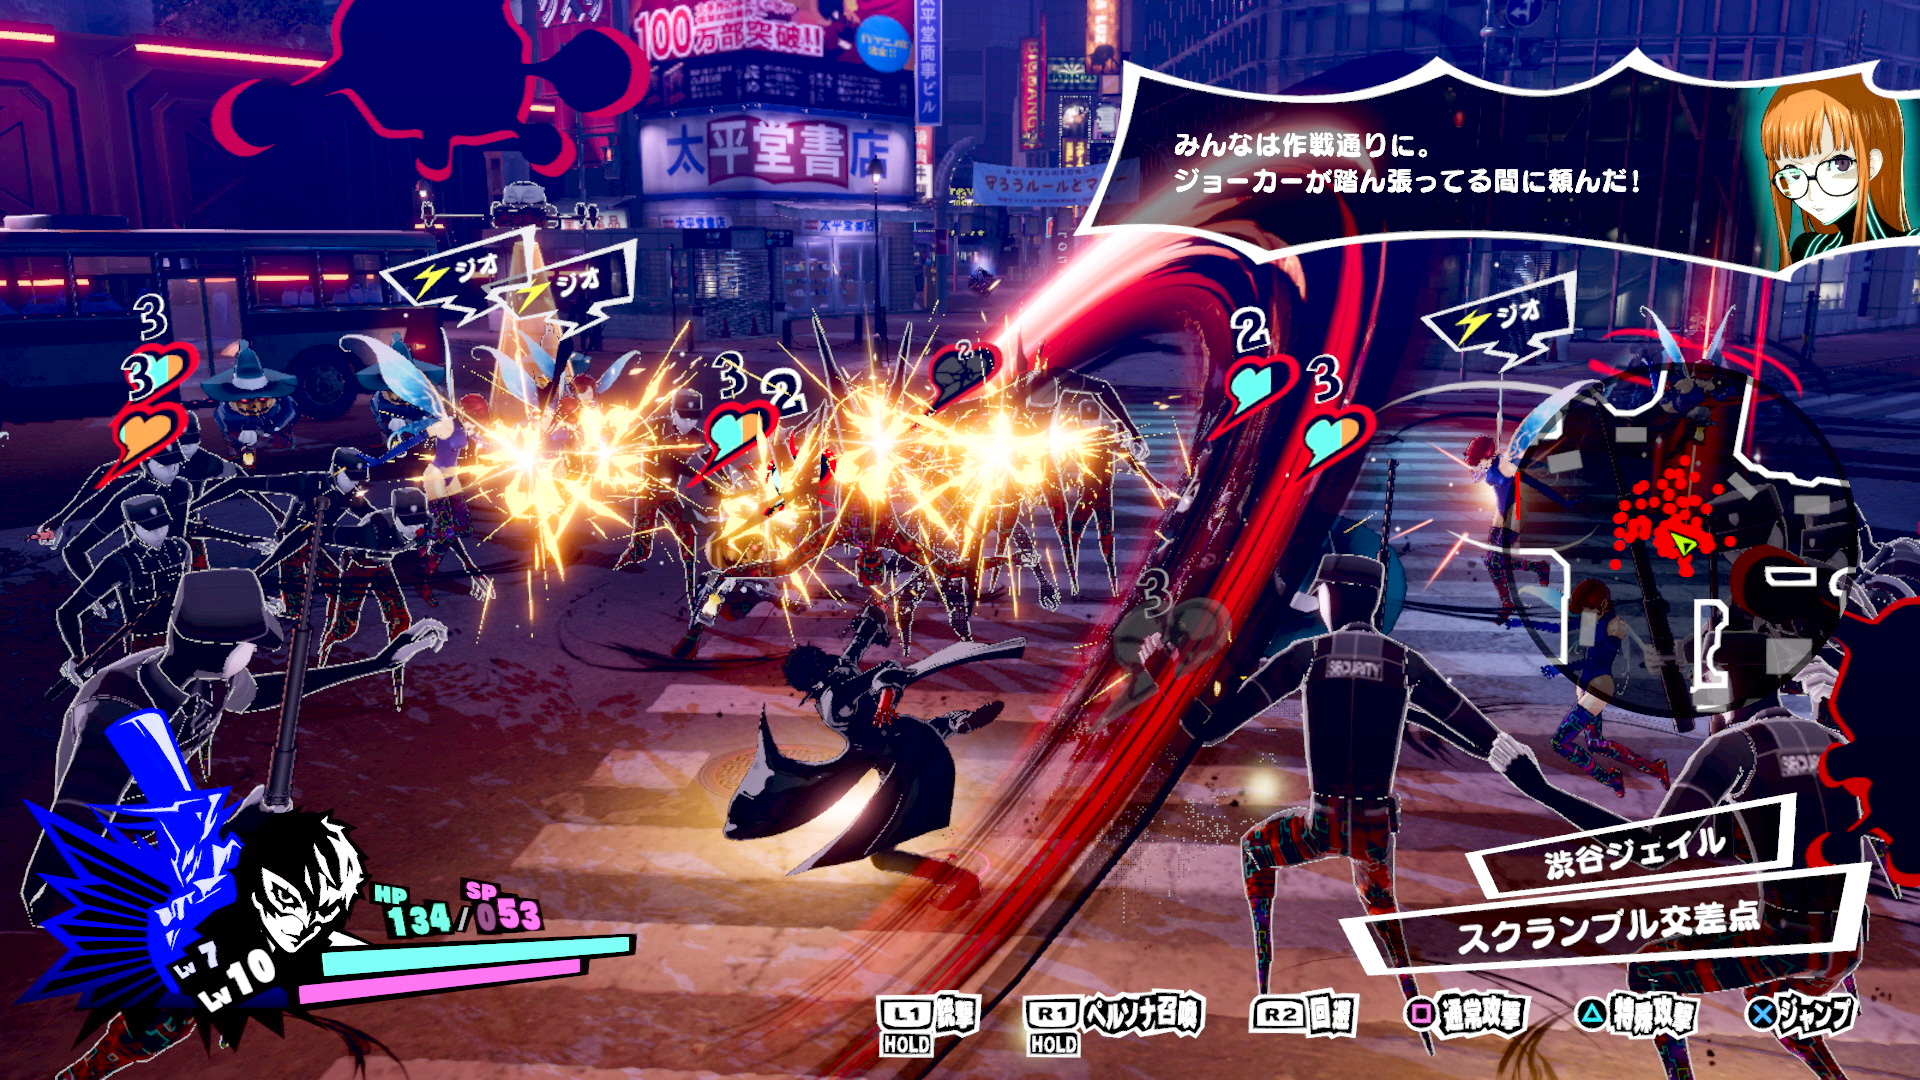 """Persona 5 Scramble: The Phantom Strikers"" Debuts in Japan in 2020"